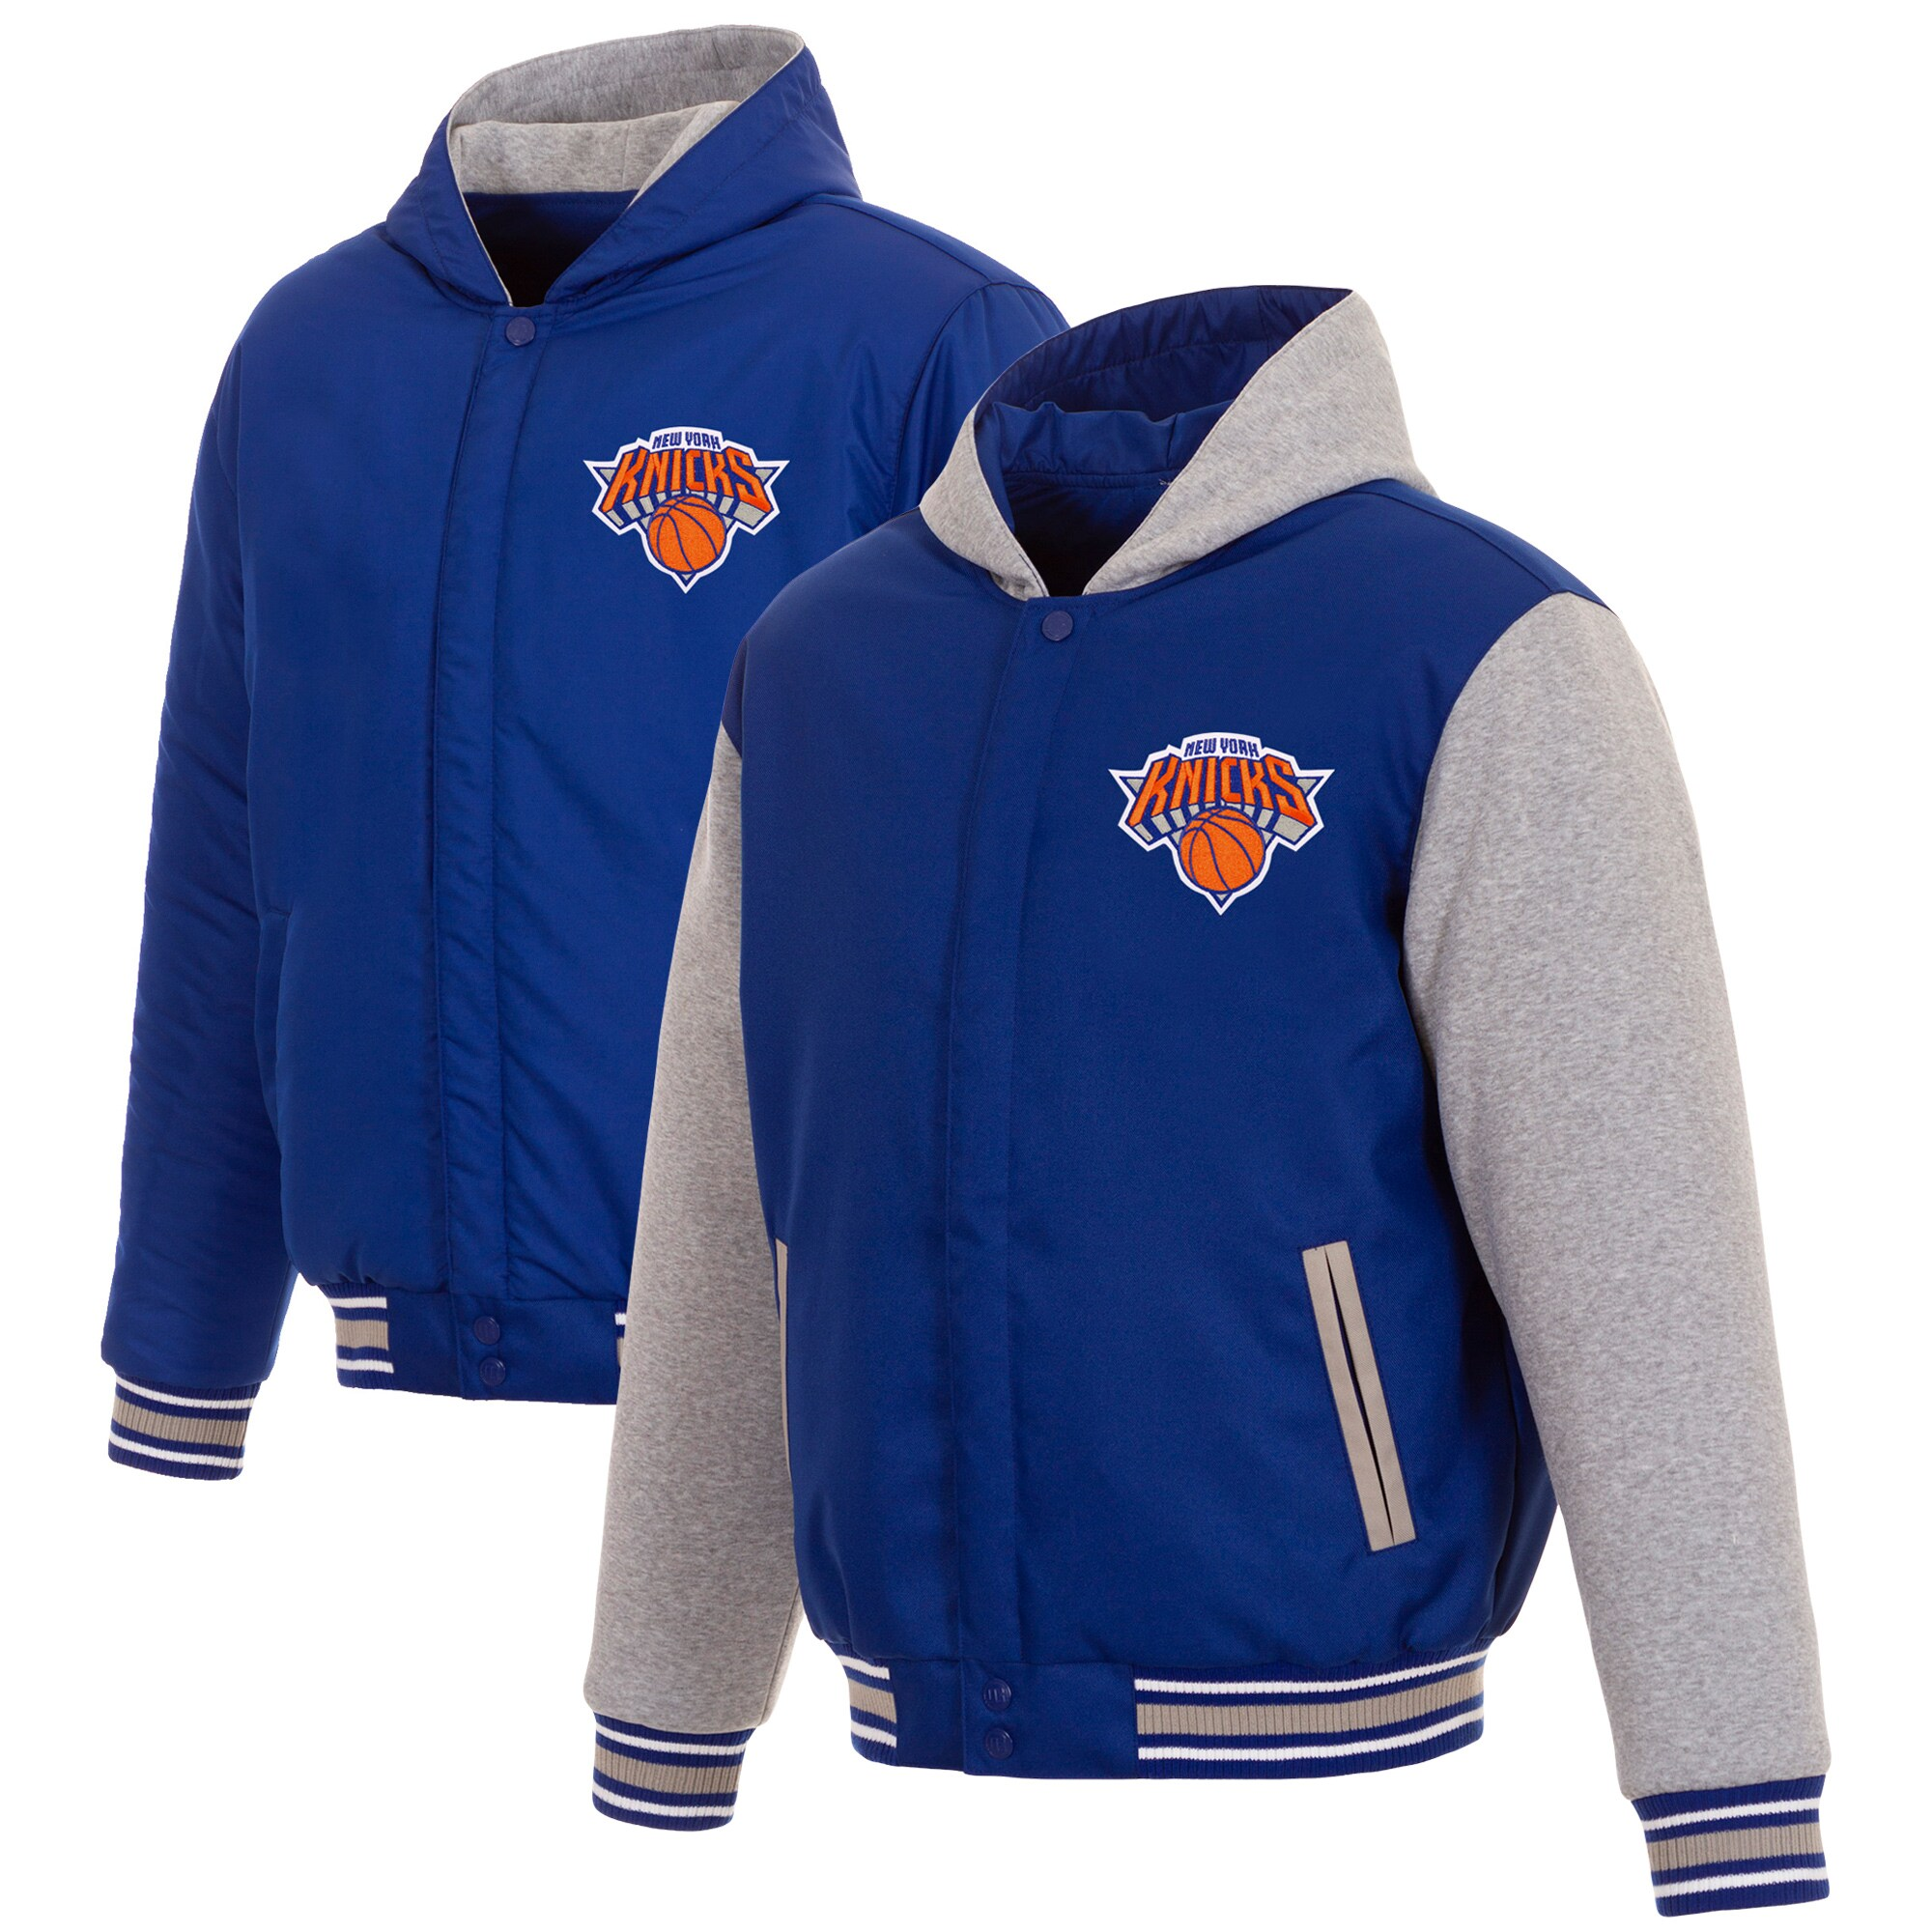 New York Knicks JH Design Reversible Poly-Twill Hooded Jacket with Fleece Sleeves - Royal/Gray